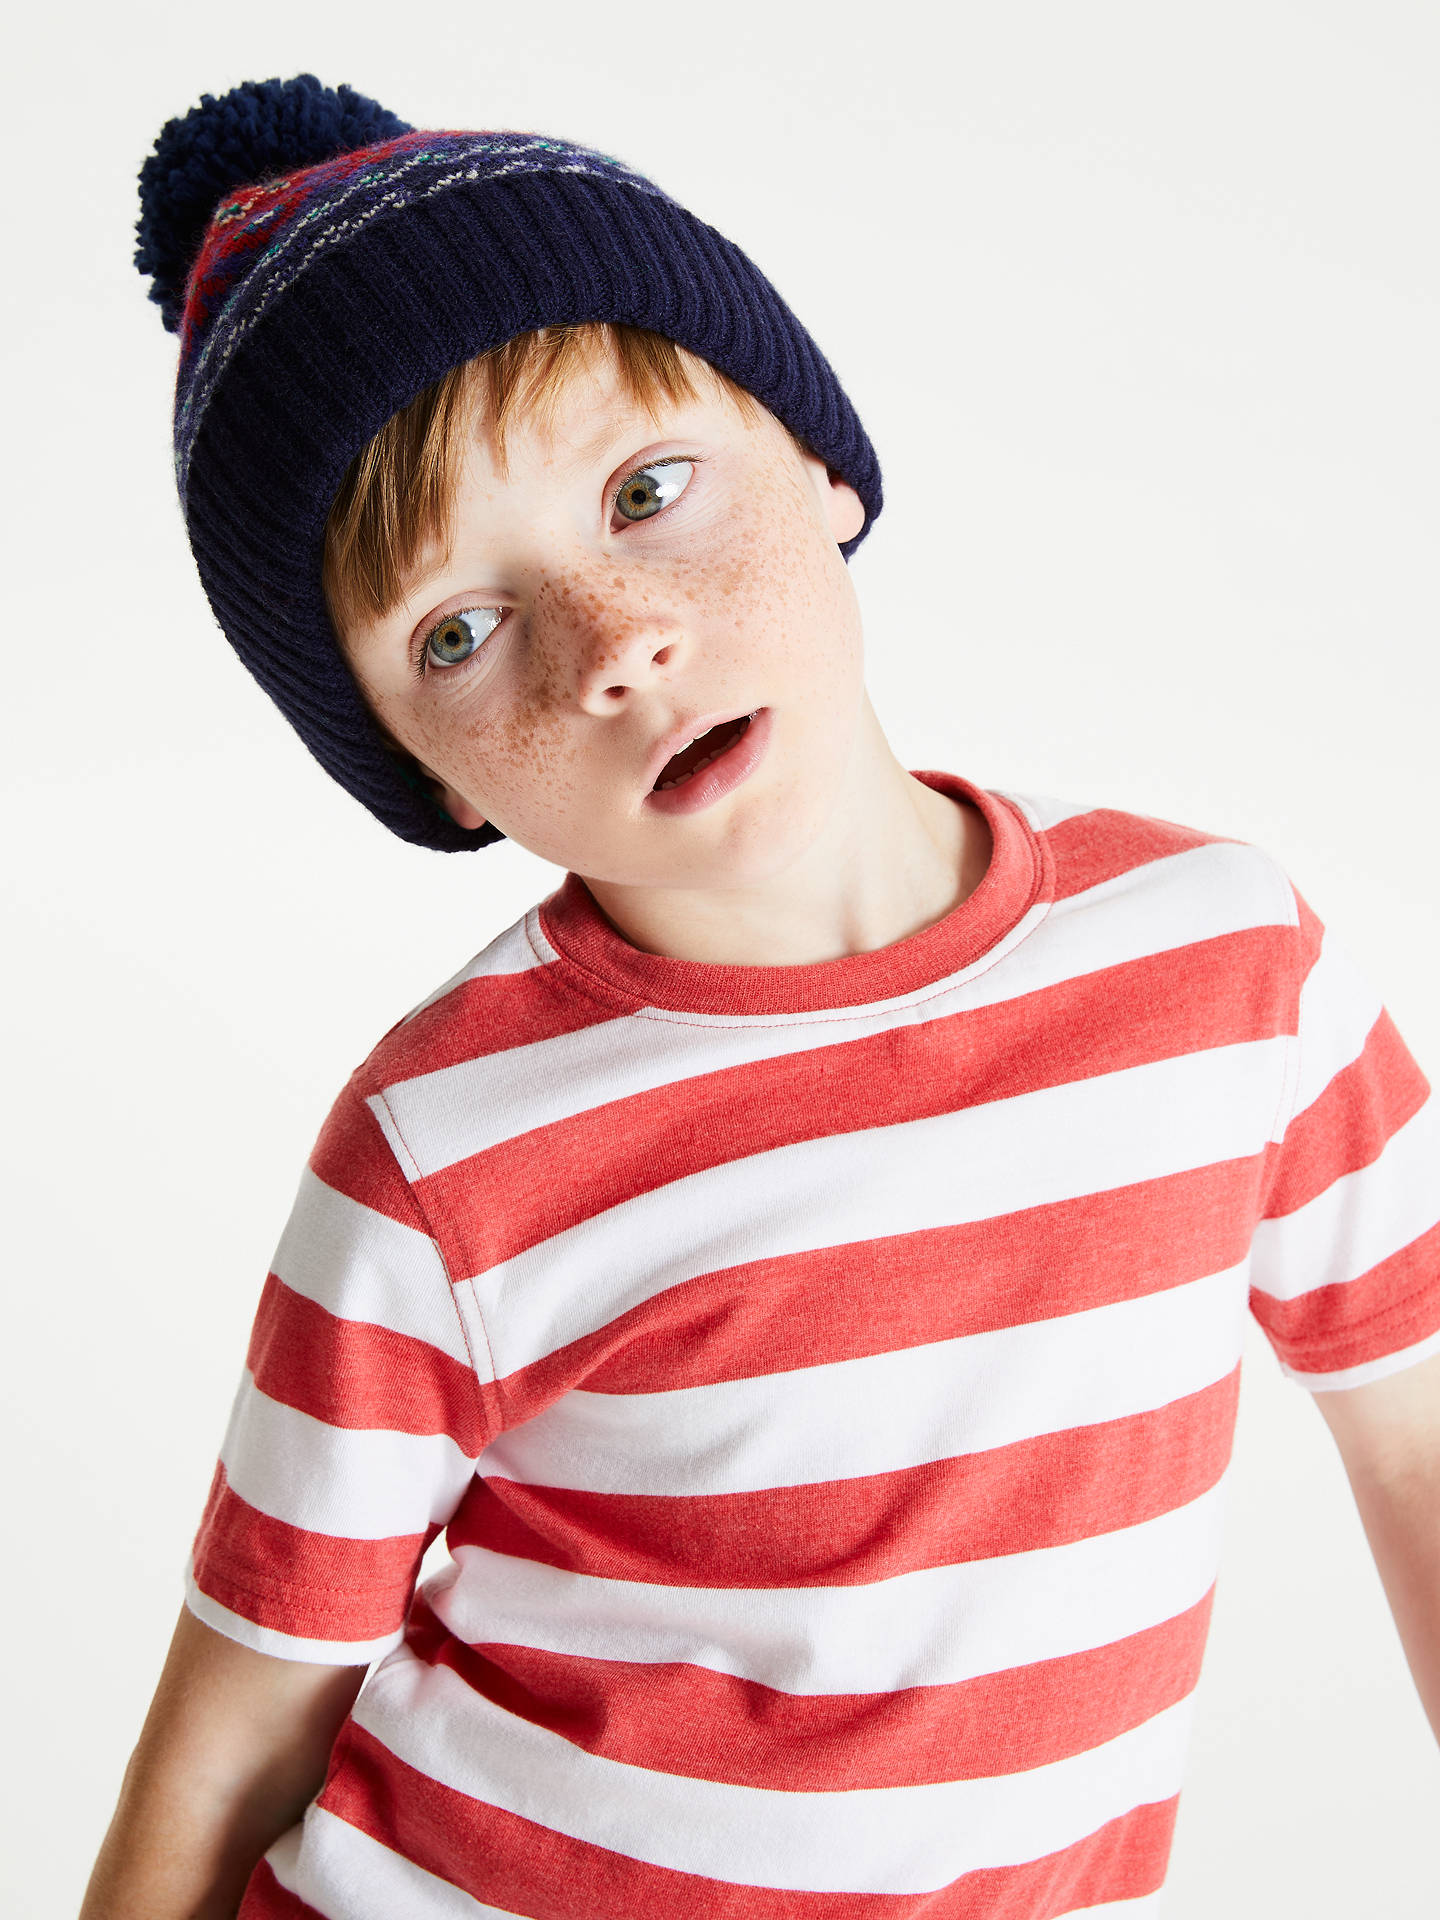 BuyJohn Lewis & Partners Children's Fair Isle Beanie Hat, Red/Navy, 3-5 years Online at johnlewis.com